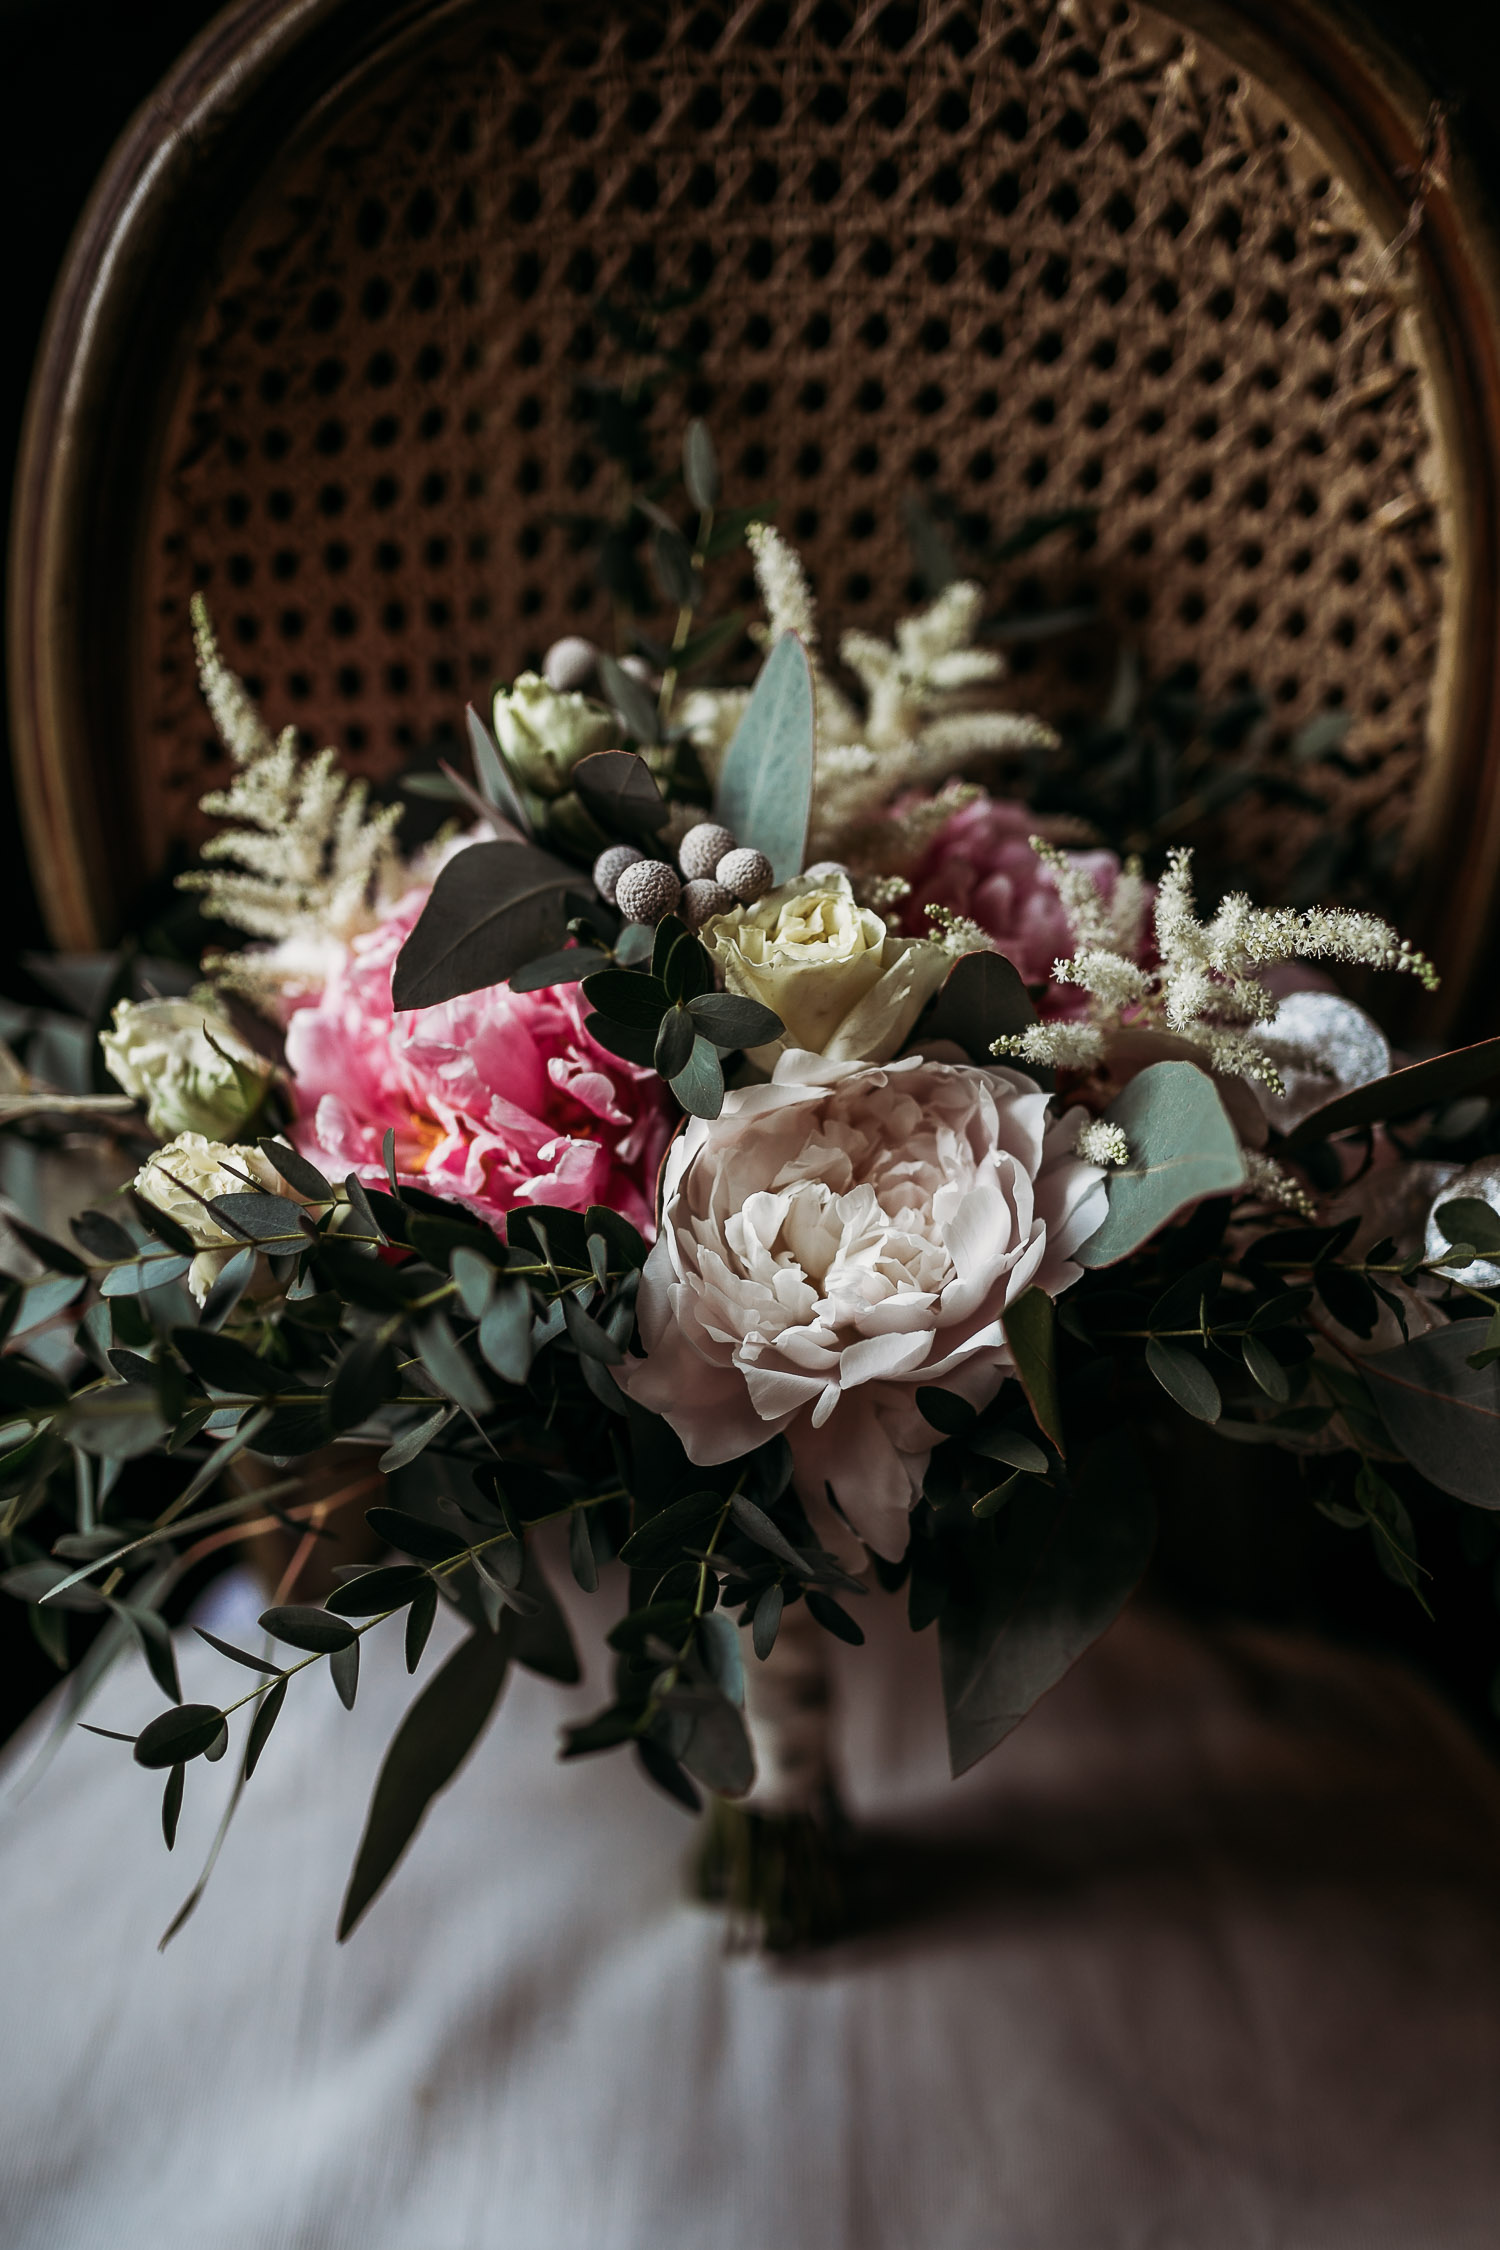 Whimsical bouquet with big pink flowers and astilbe for a wedding at Castello di Collegno